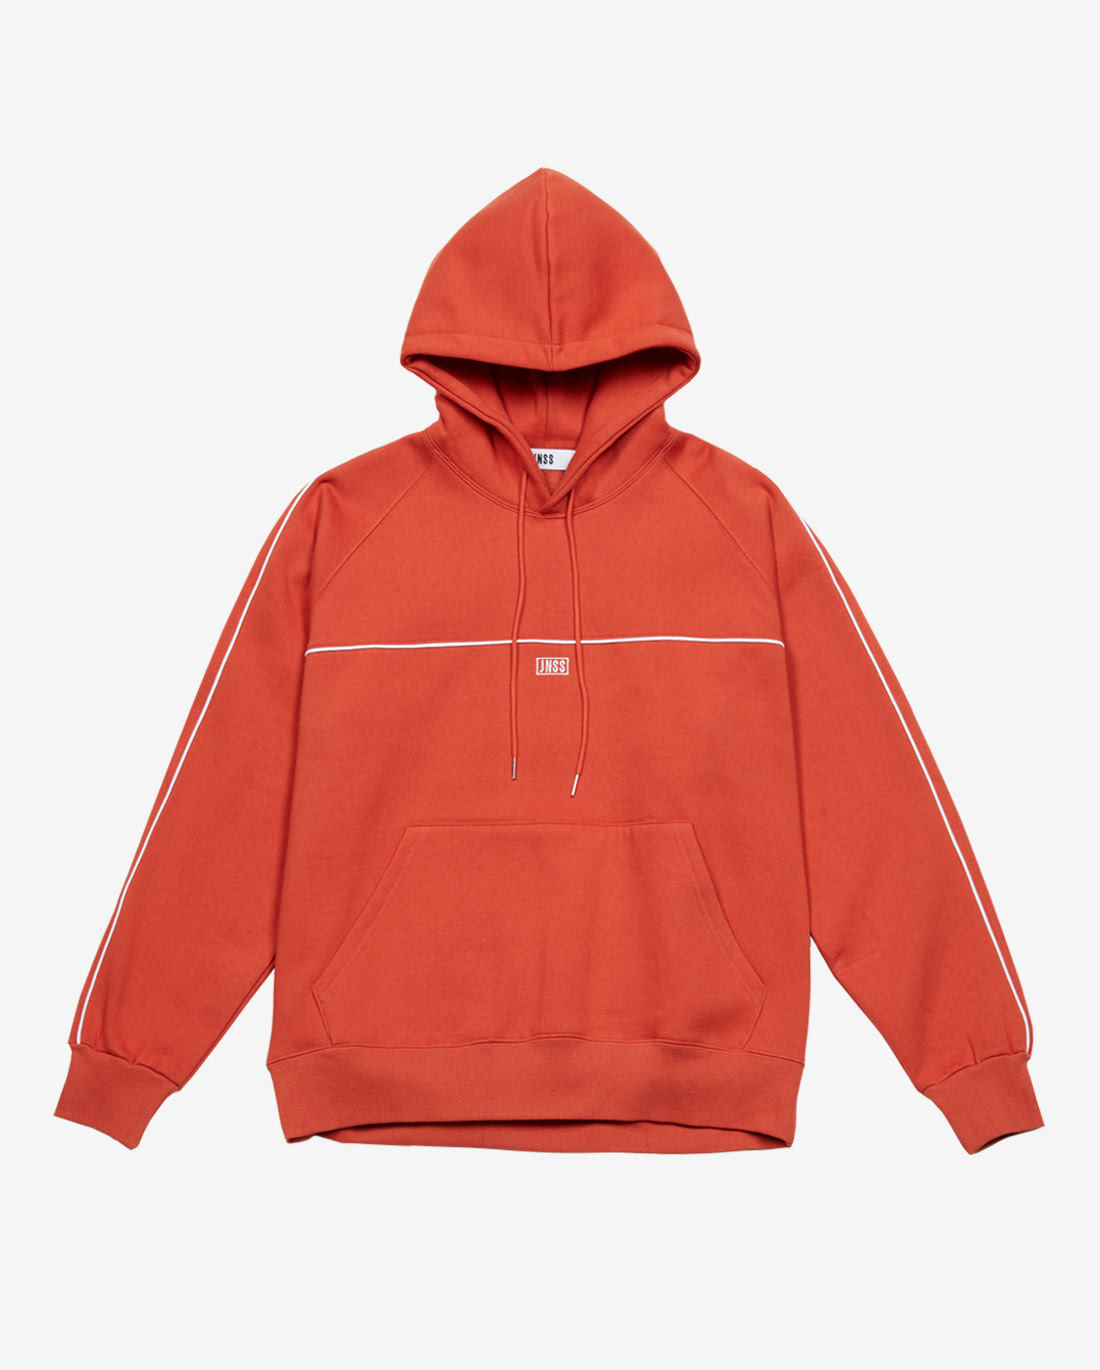 Piping Hoodie Orange (FW Version 기모)